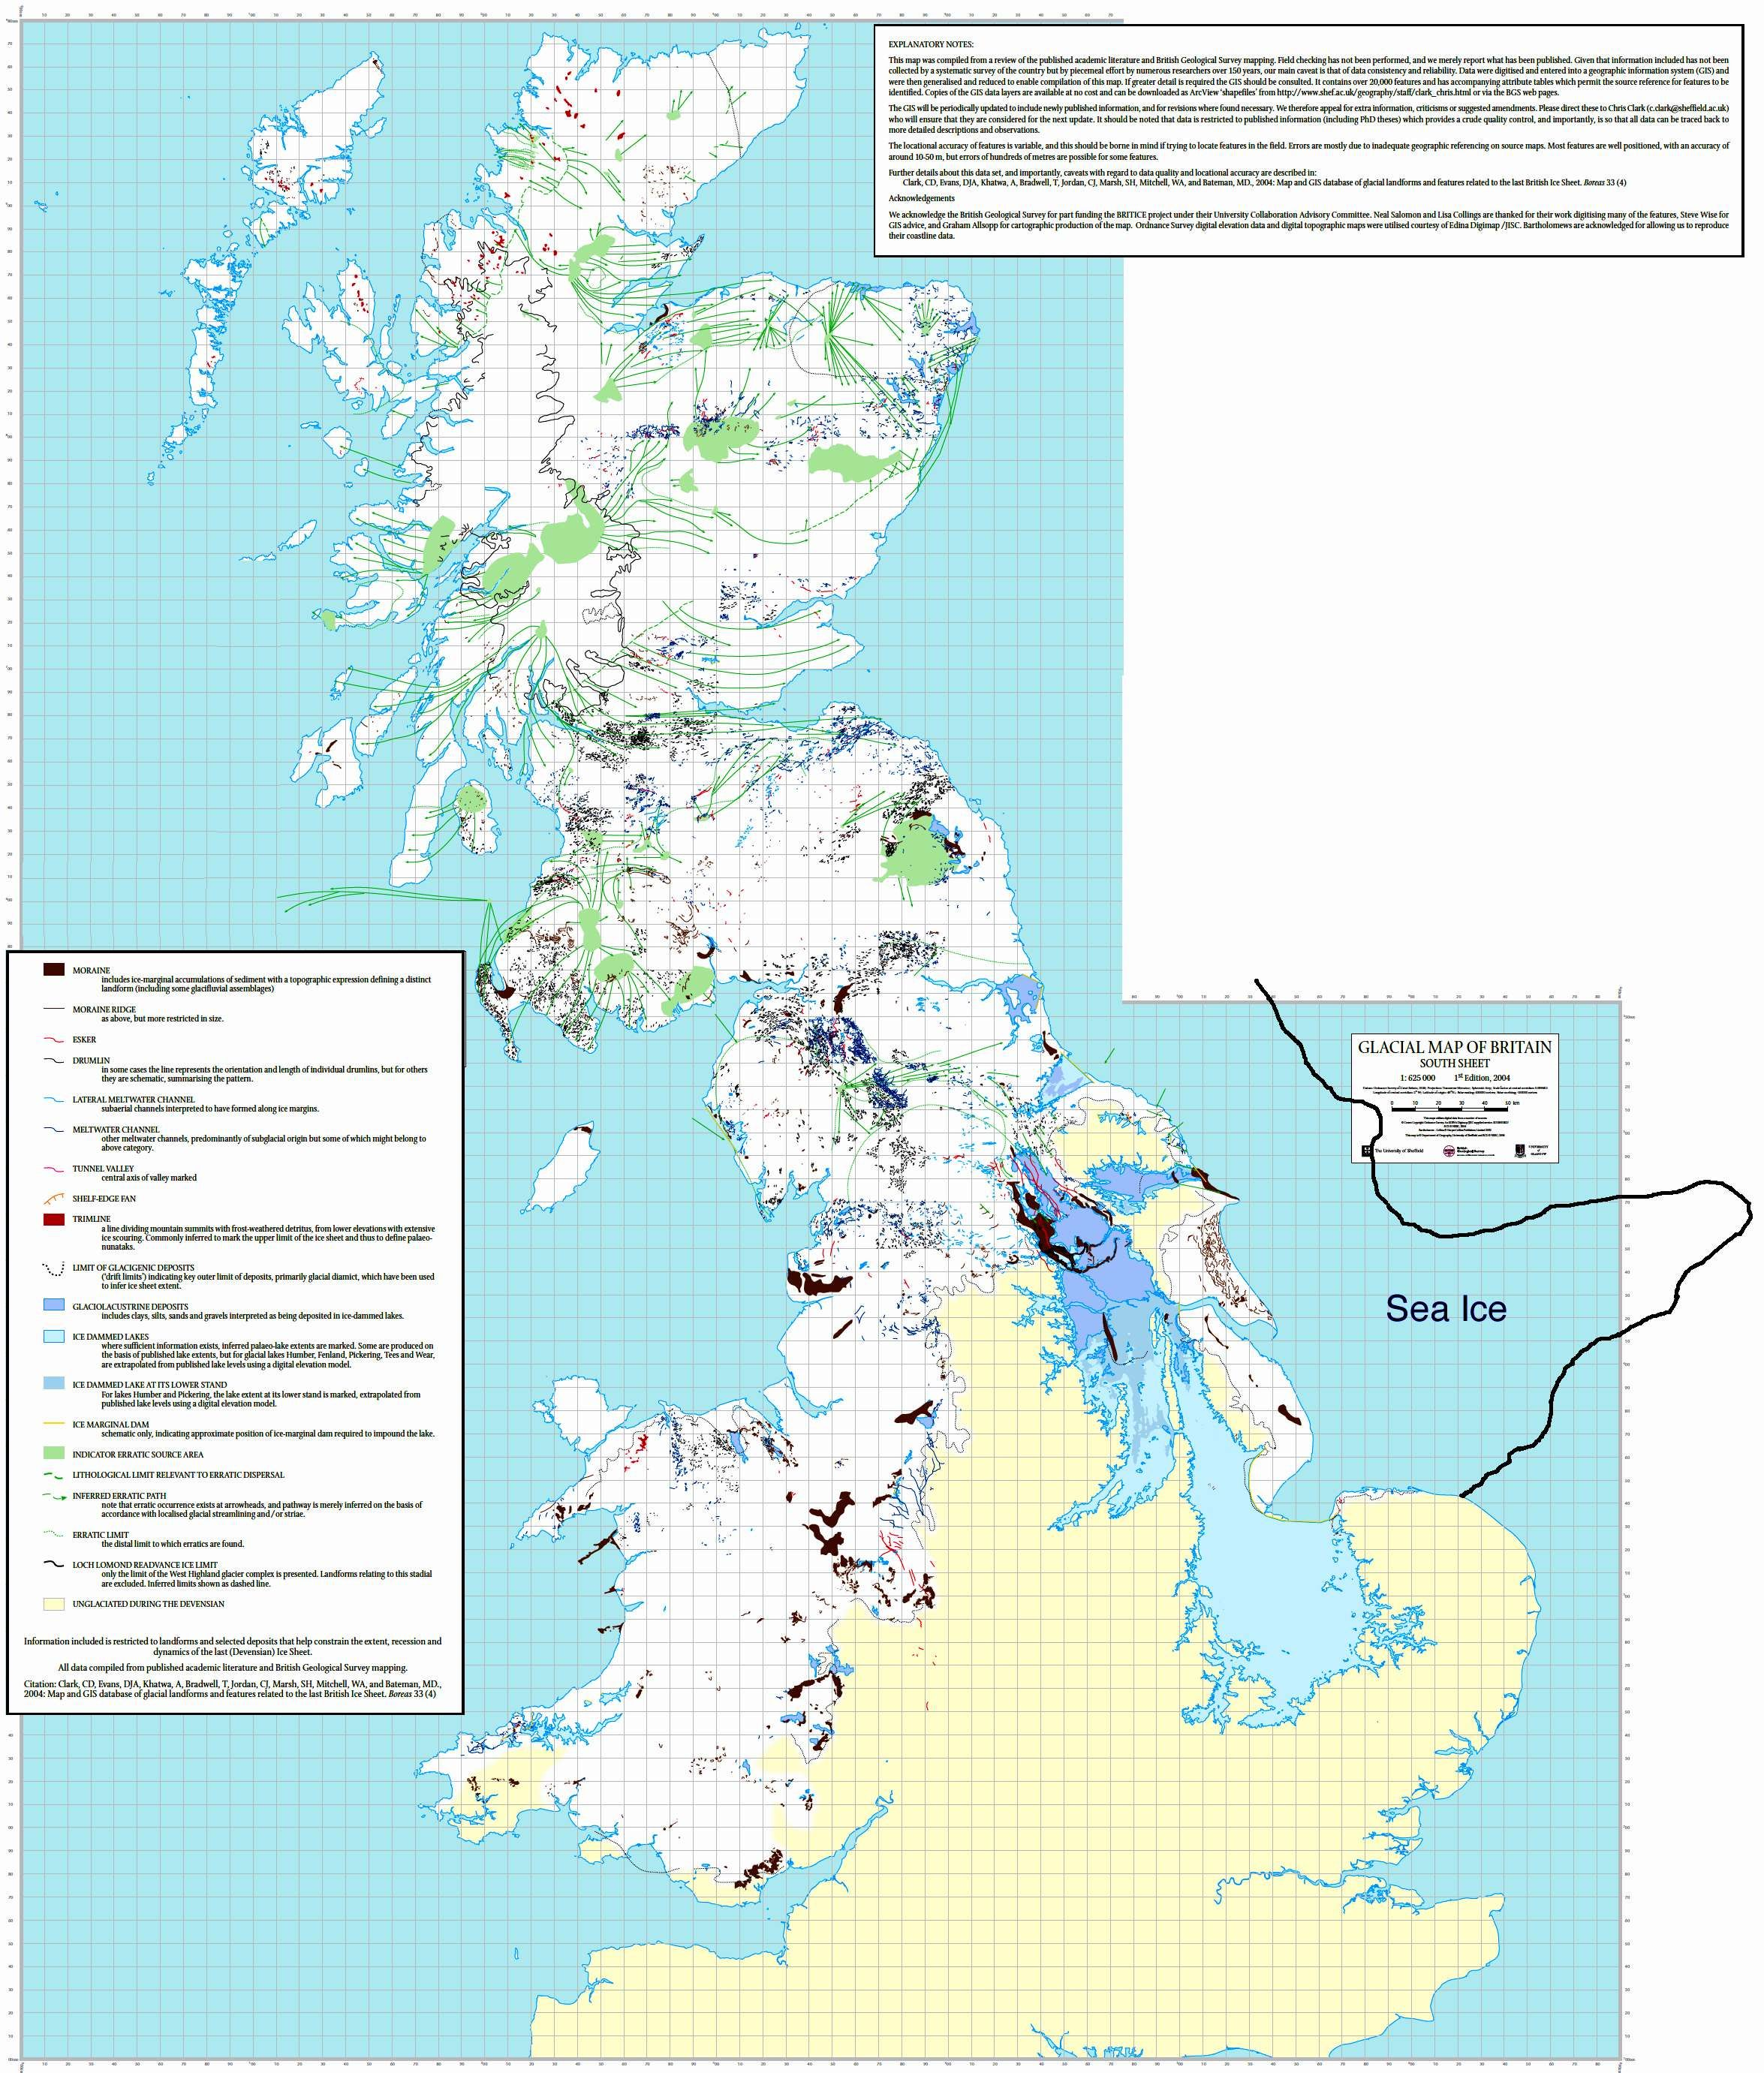 Map Of Ice Sheet Over The British Isles